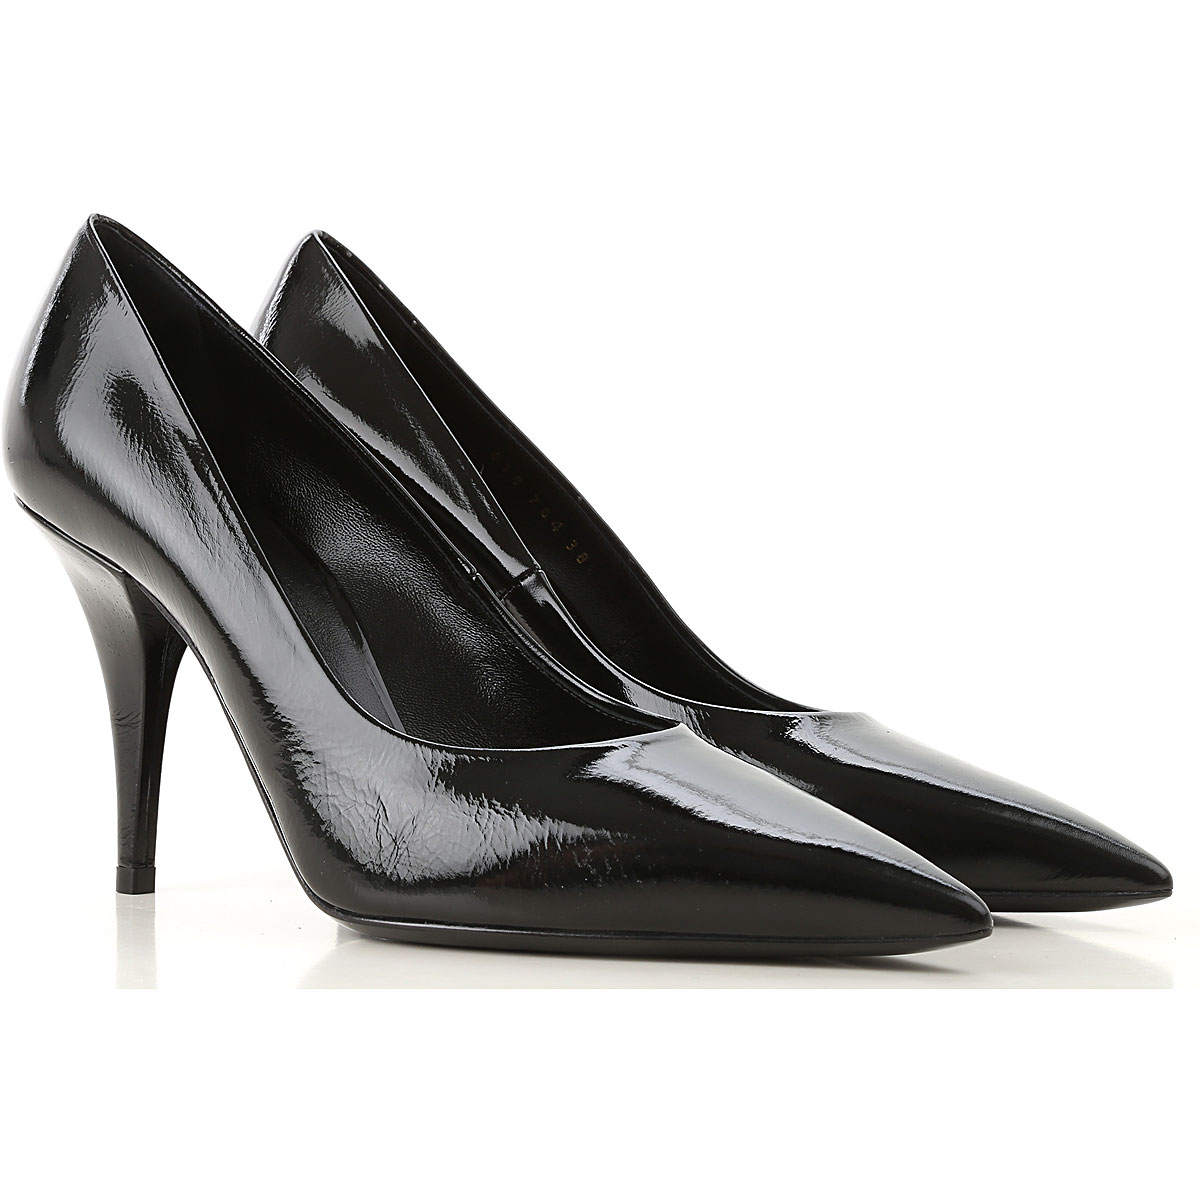 Casadei Pumps & High Heels for Women On Sale in Outlet, Black, Leather, 2019, 6.5 7 8 9